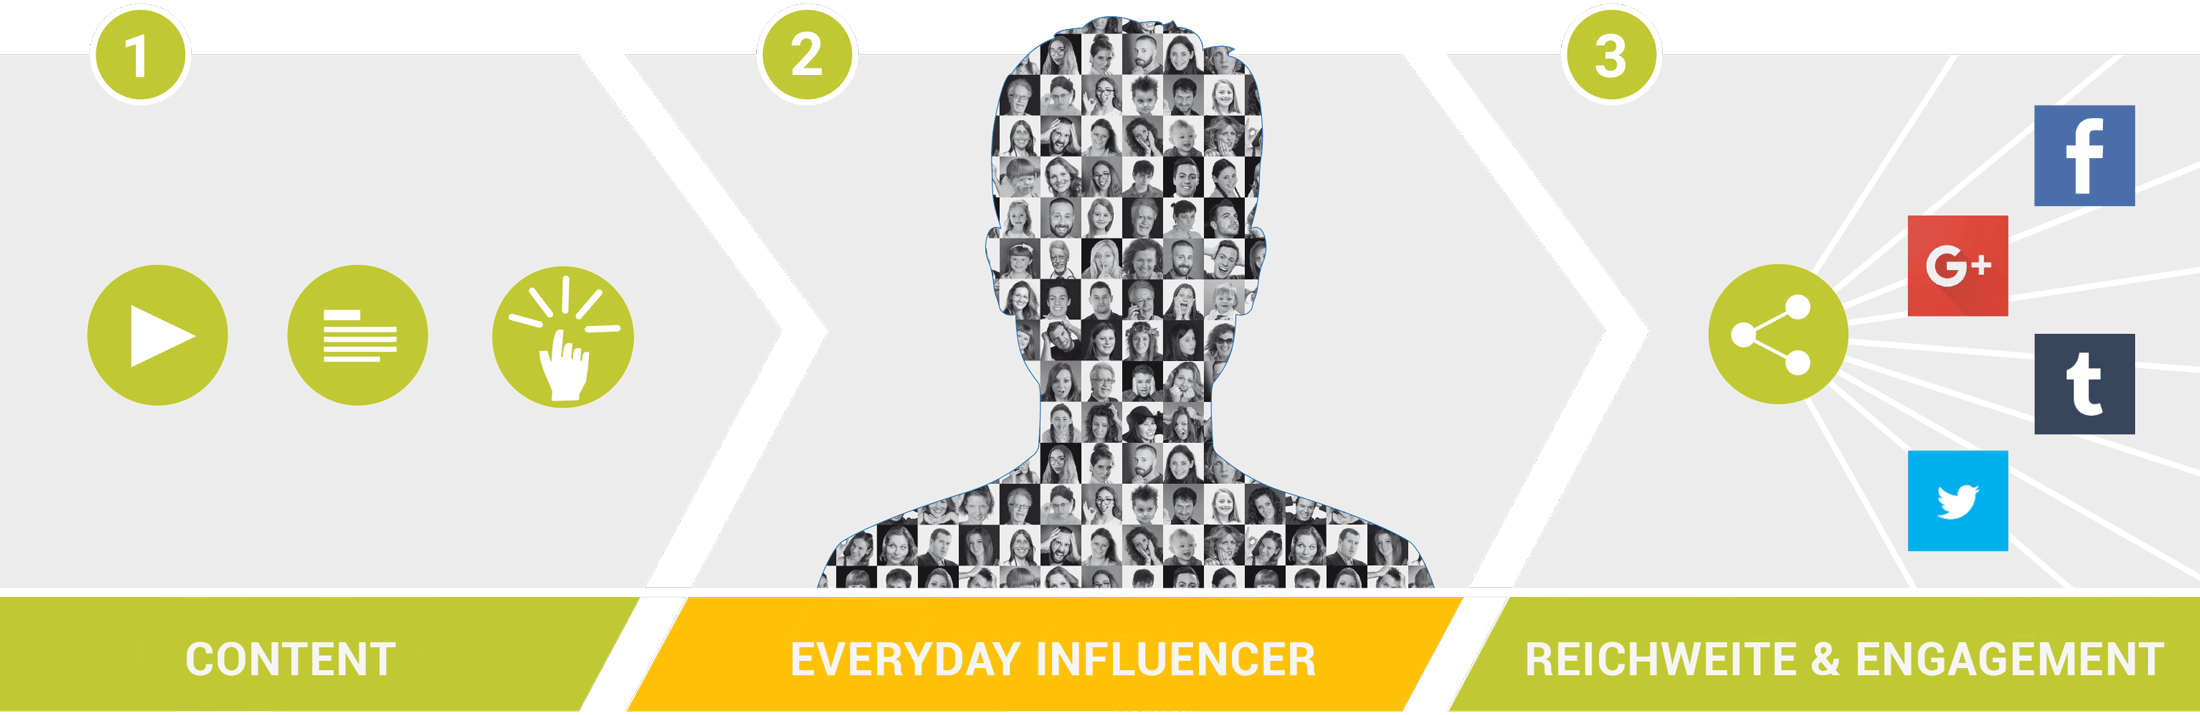 Content & Everyday Influencer & Reichweite - Engagement